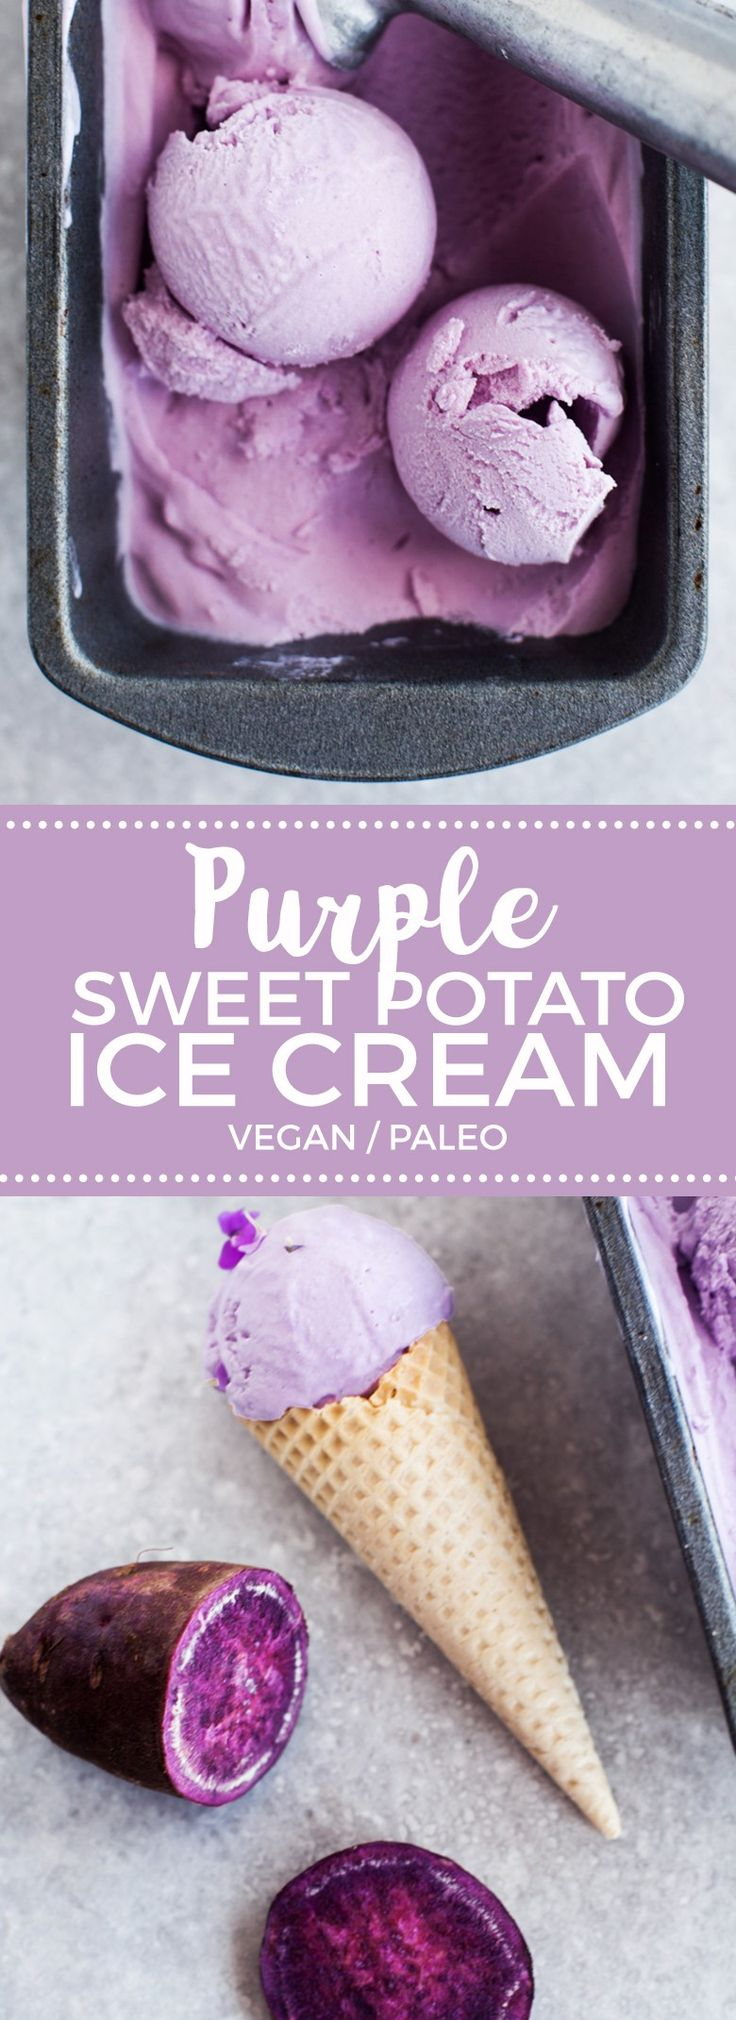 Coconut & Purple Sweet Potato Ice Cream (Vegan)                                                                                                                                                                                 More